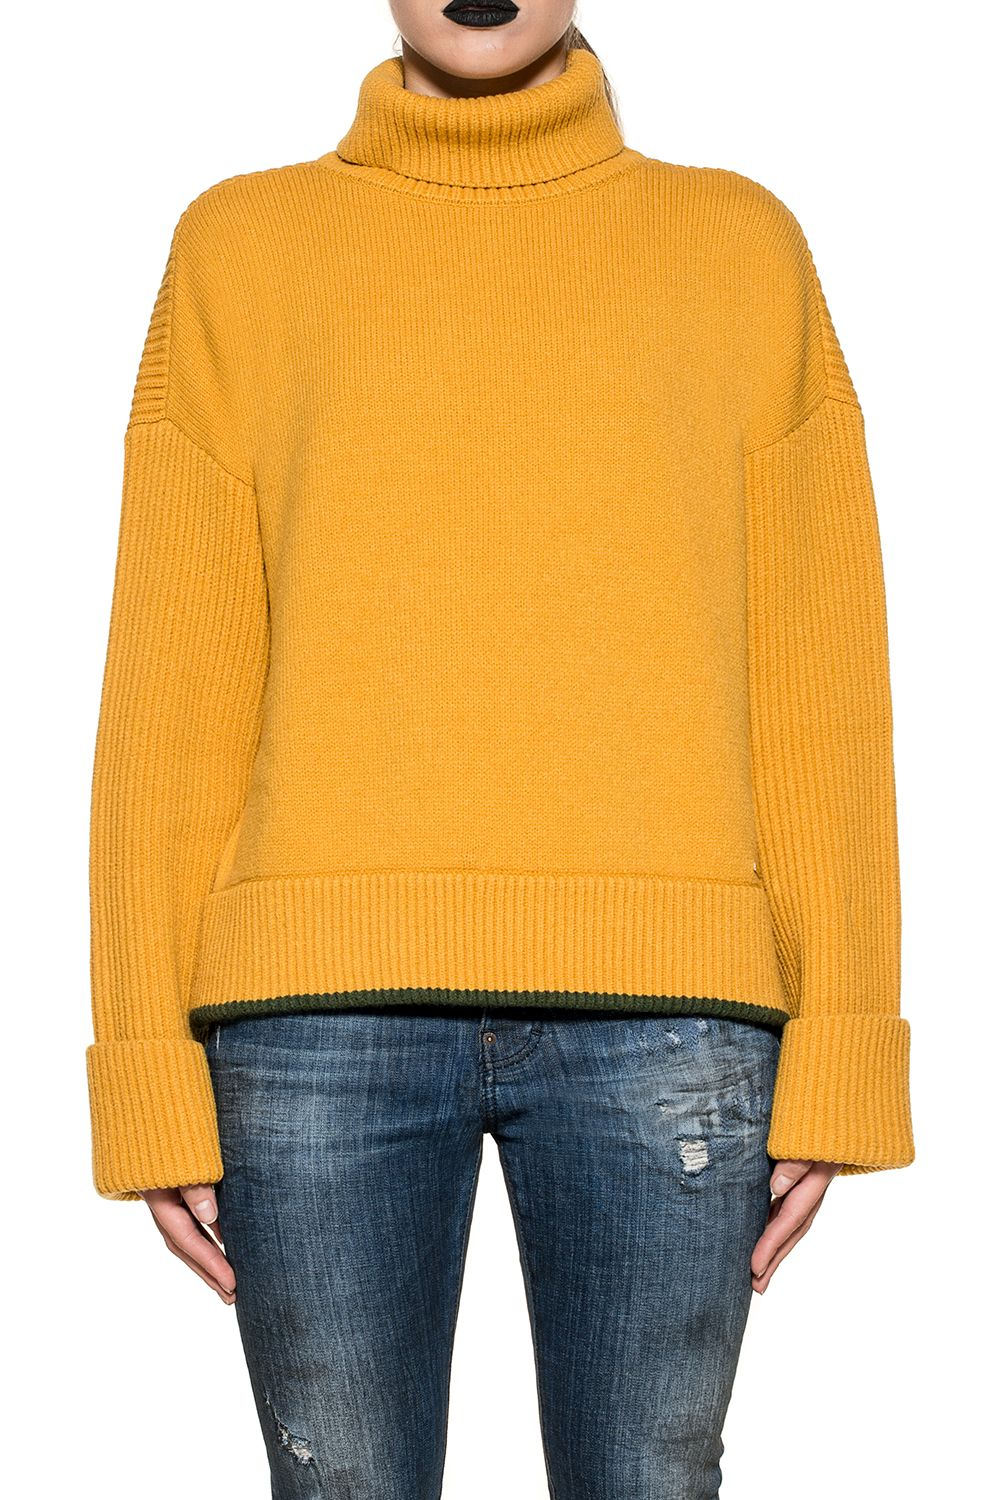 Ocra Yellow Wool Pullover